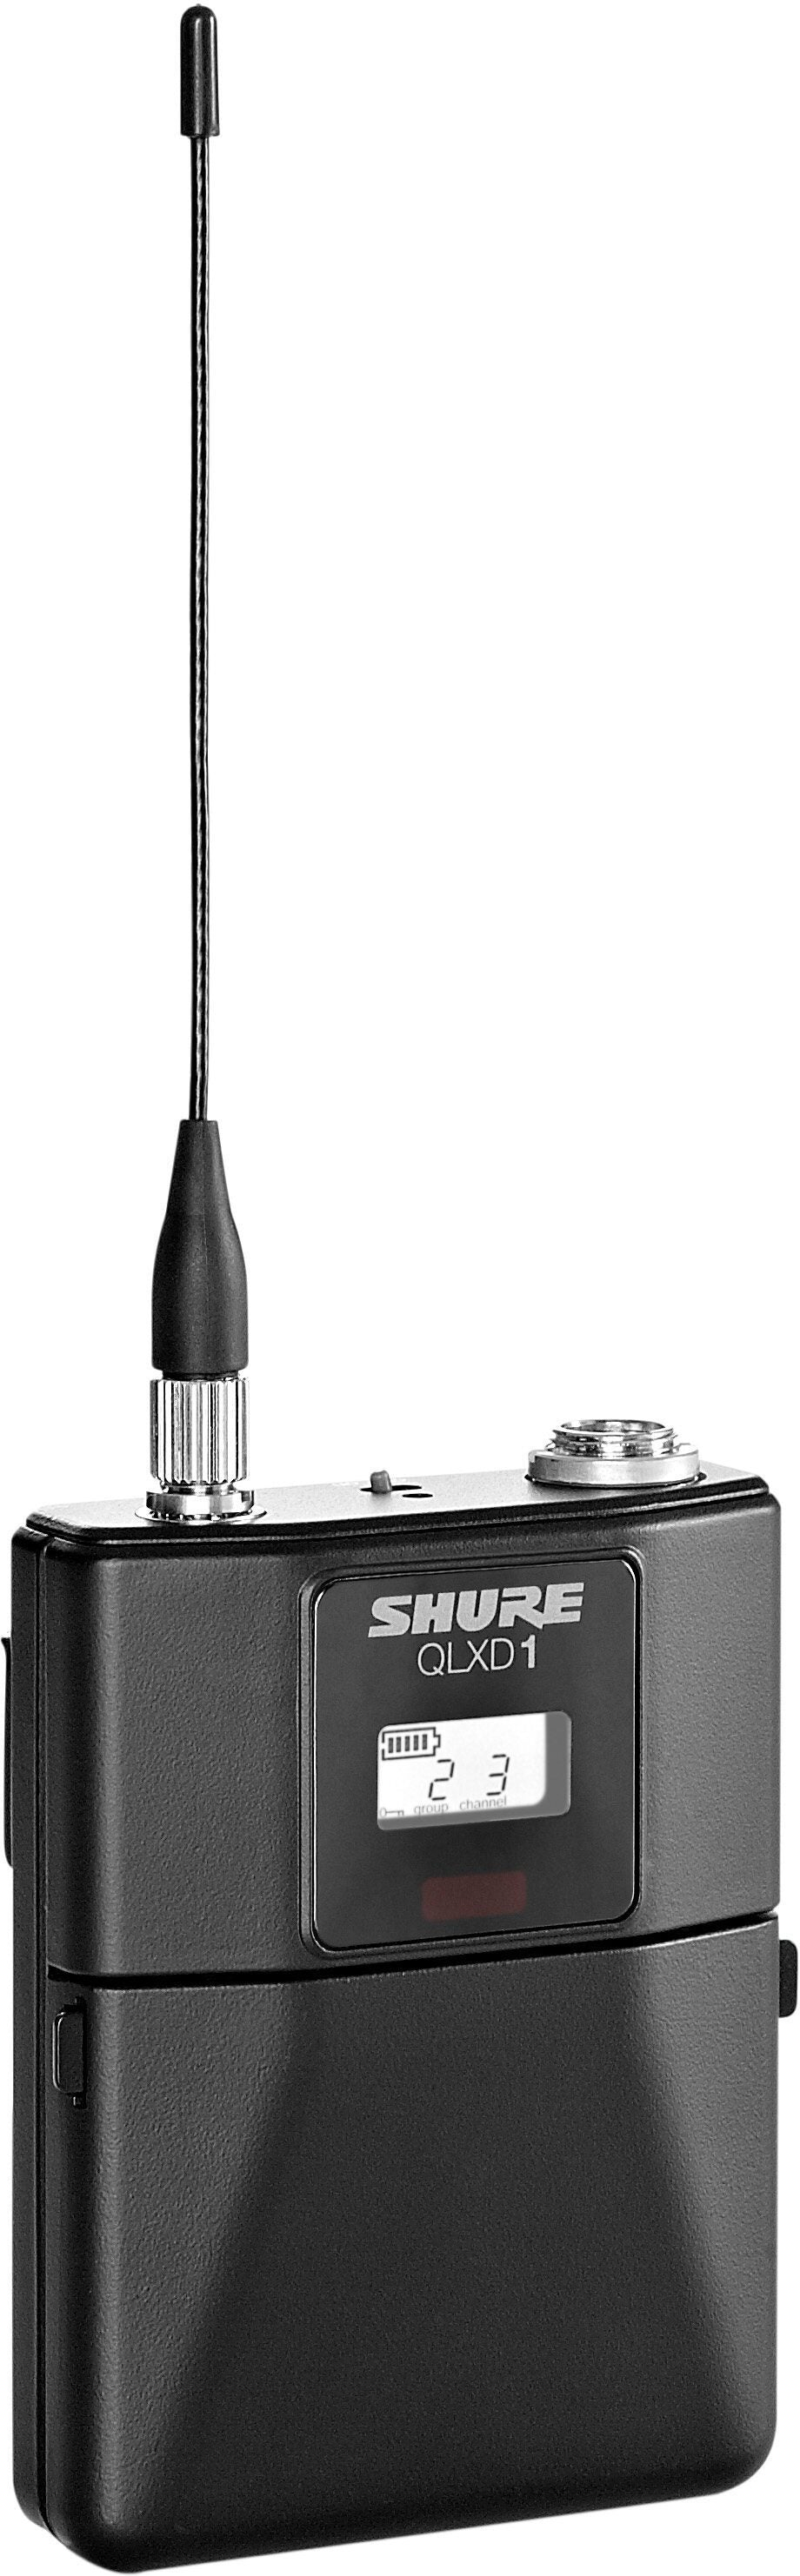 Shure QLXD1483 Wireless System with WL183 Lavalier Microphone, Band G50 (470 - 534 MHz)